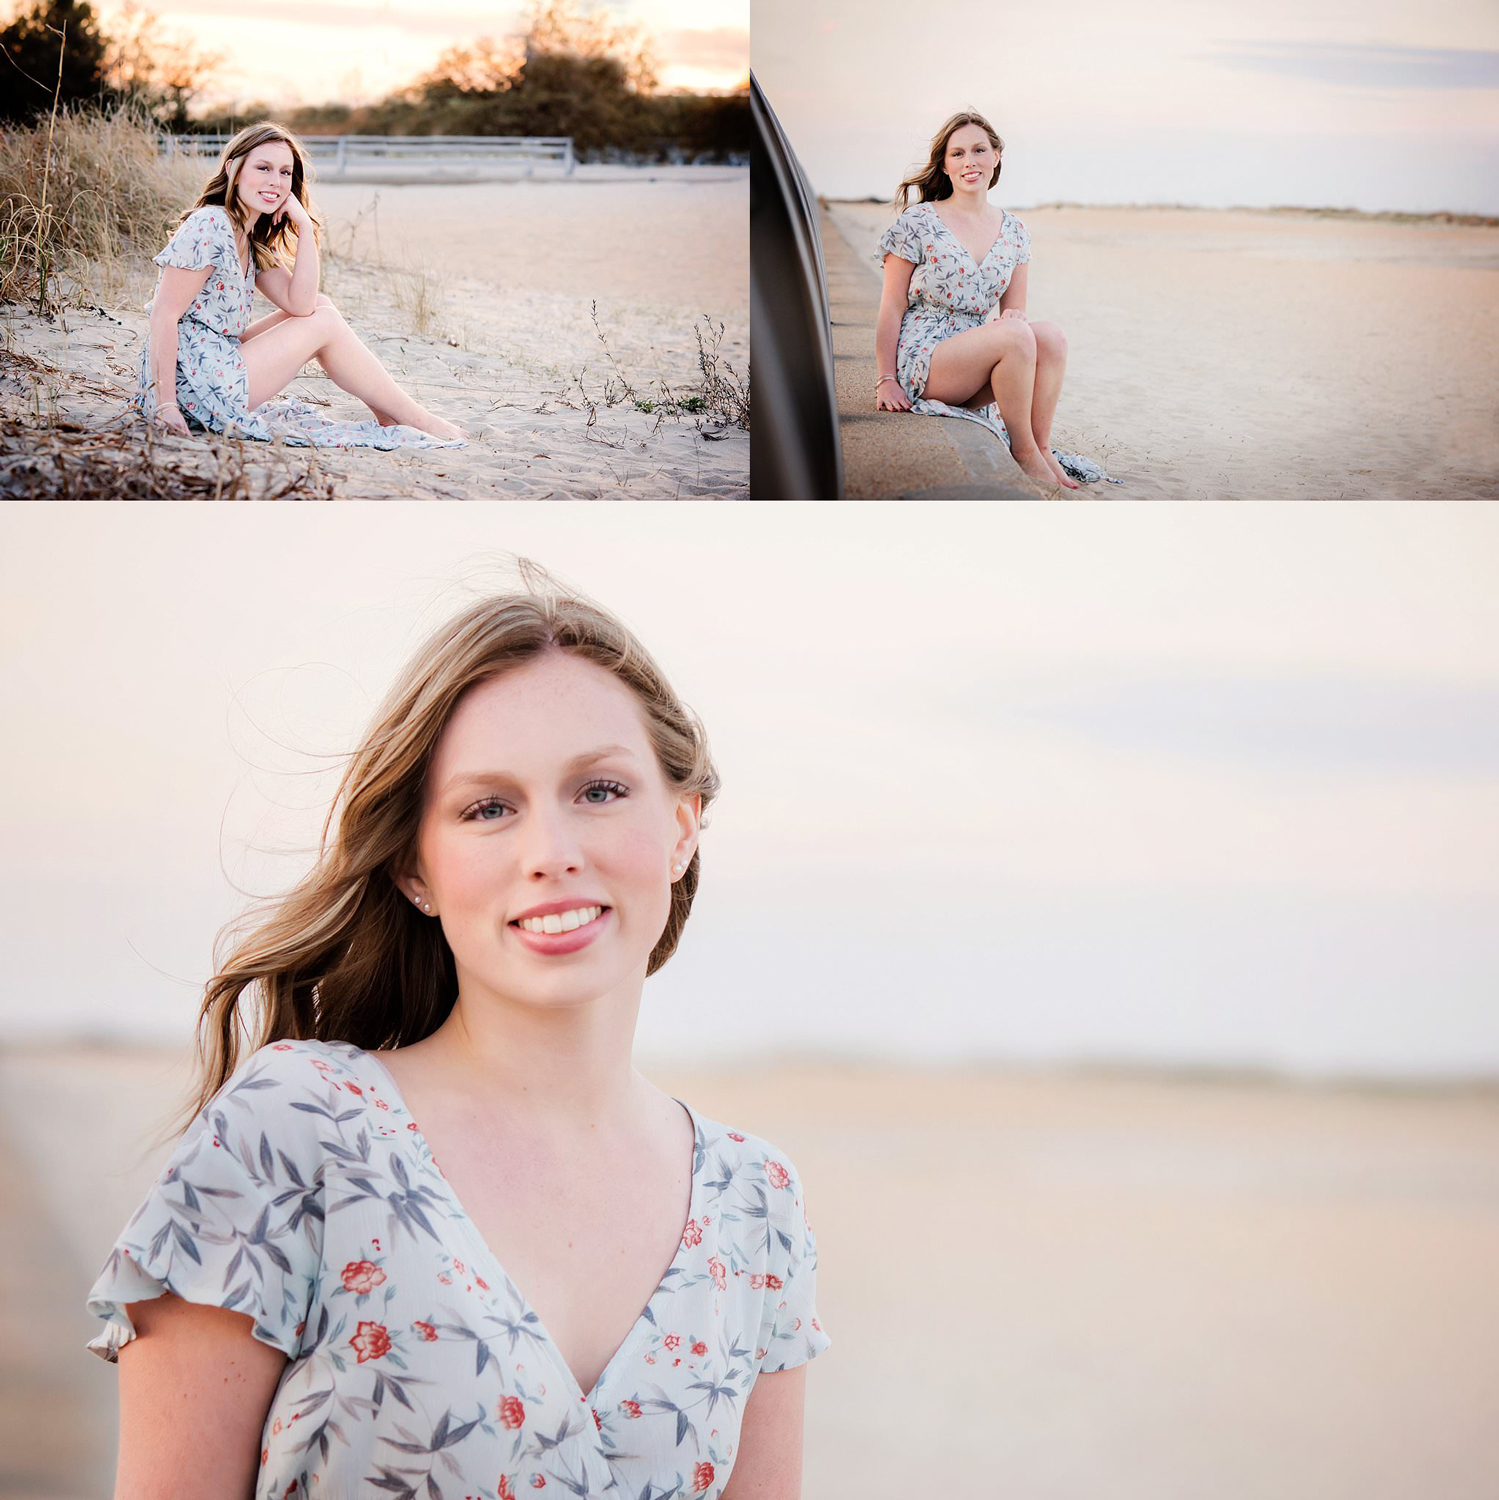 Senior-portraits-at-the-beach-Virginia-Beach-senior-class-melissa-bliss-photography.jpg